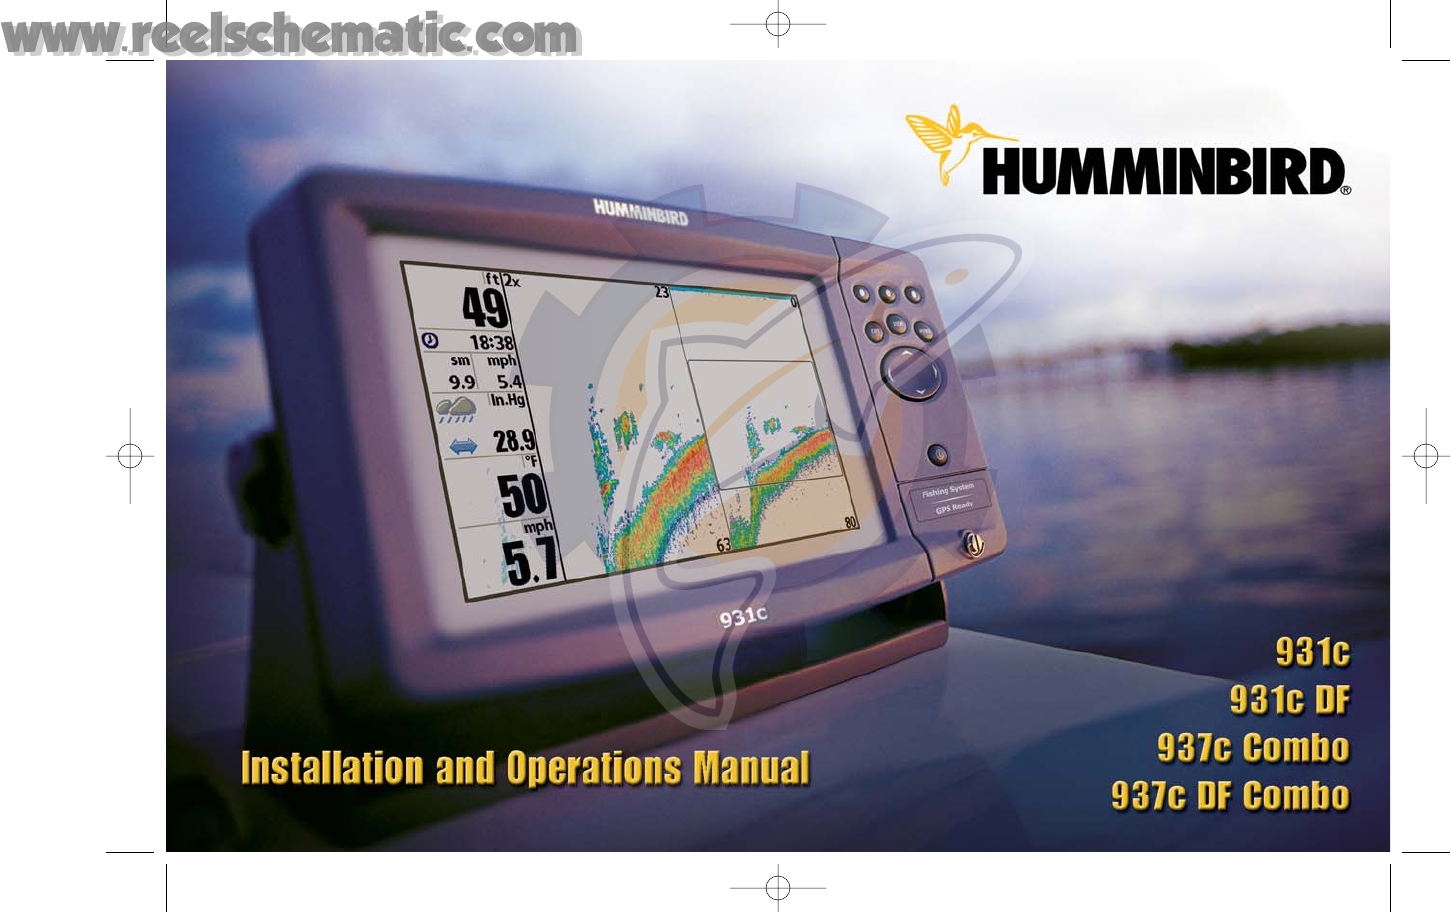 humminbird fish finder 937c df combo user guide manualsonline com rh marine manualsonline com